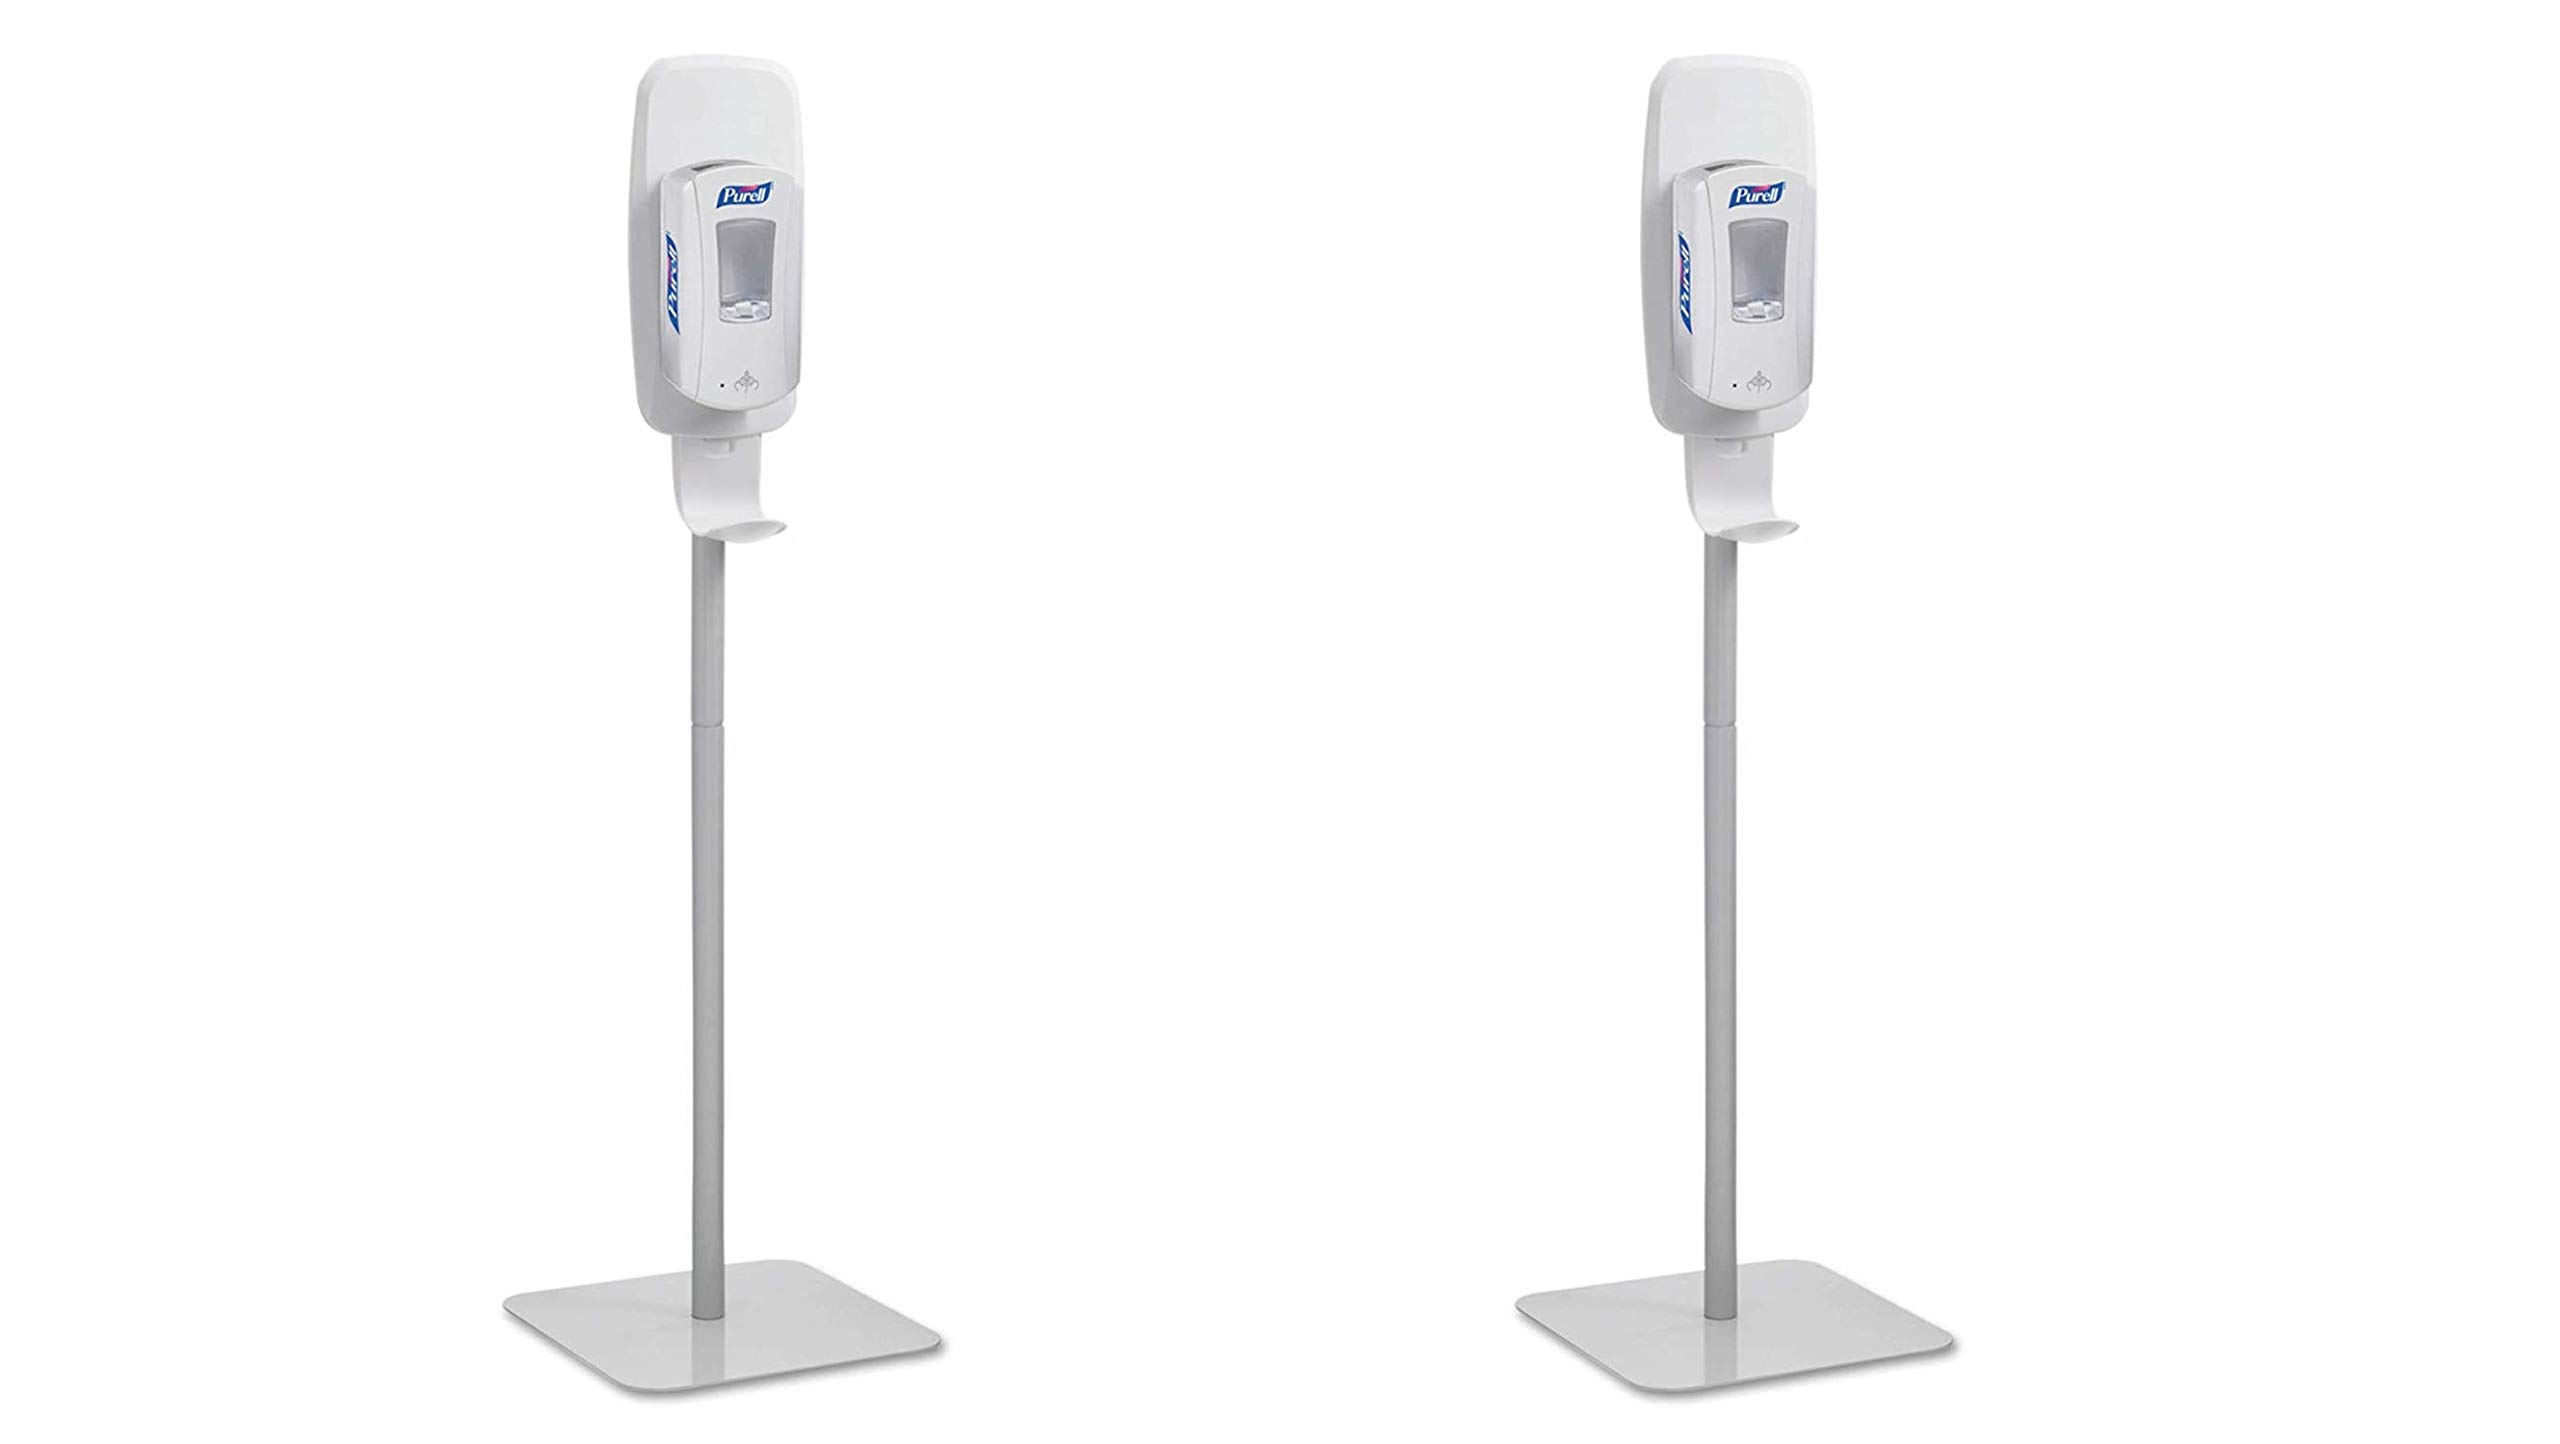 PURELL Hand Sanitizer Dispenser Floor Stand, White/Grey, Floor Stand for use with PURELL LTX or TFX Touch-Free Sanitizer Dispensers – 2424-DS (Pack of 2)